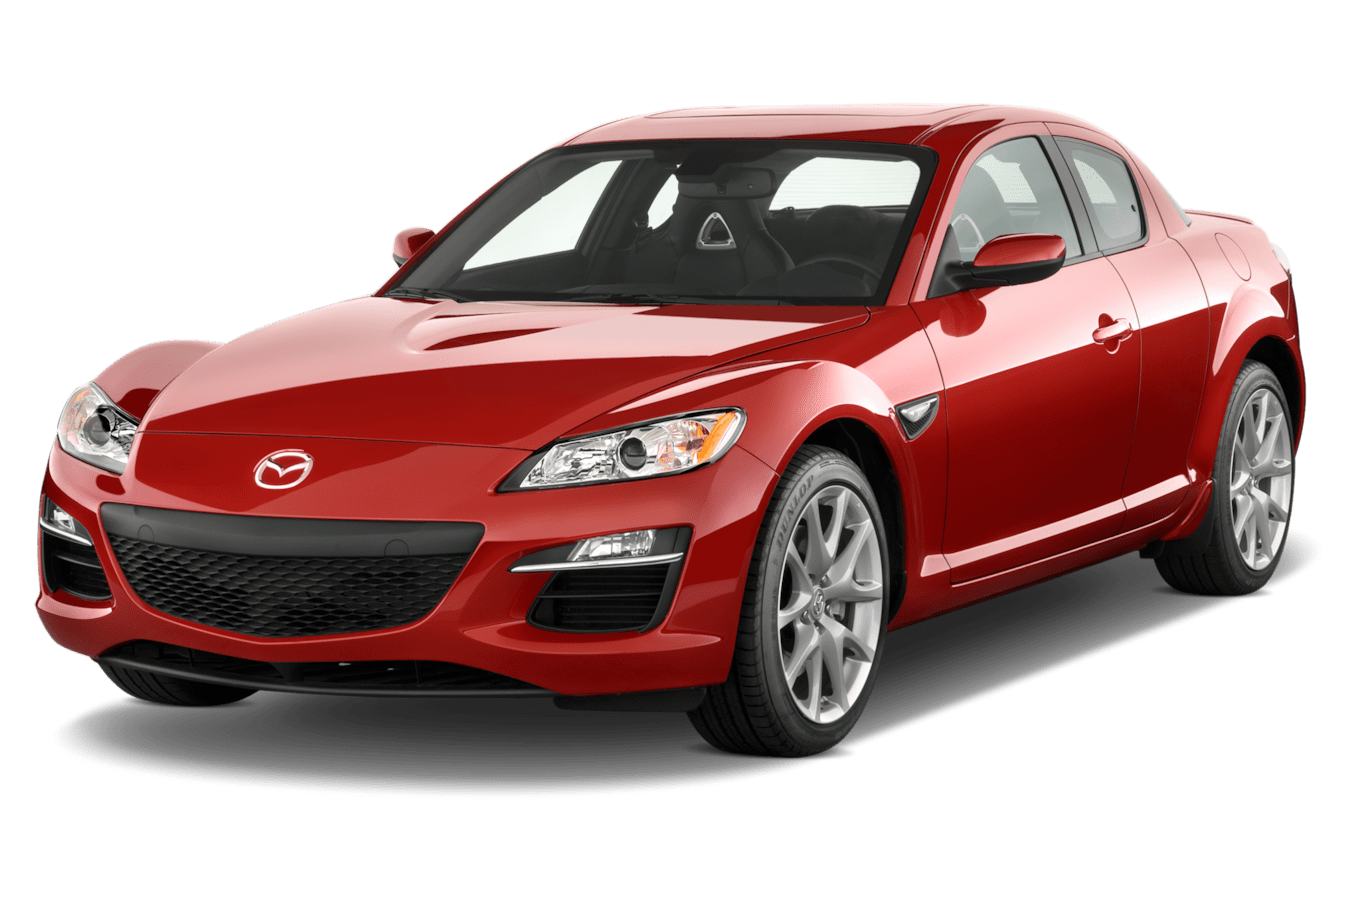 small resolution of mazda rx 8 wiring harness varieties wiring diagram gp 2010 mazda rx 8 reviews research rx